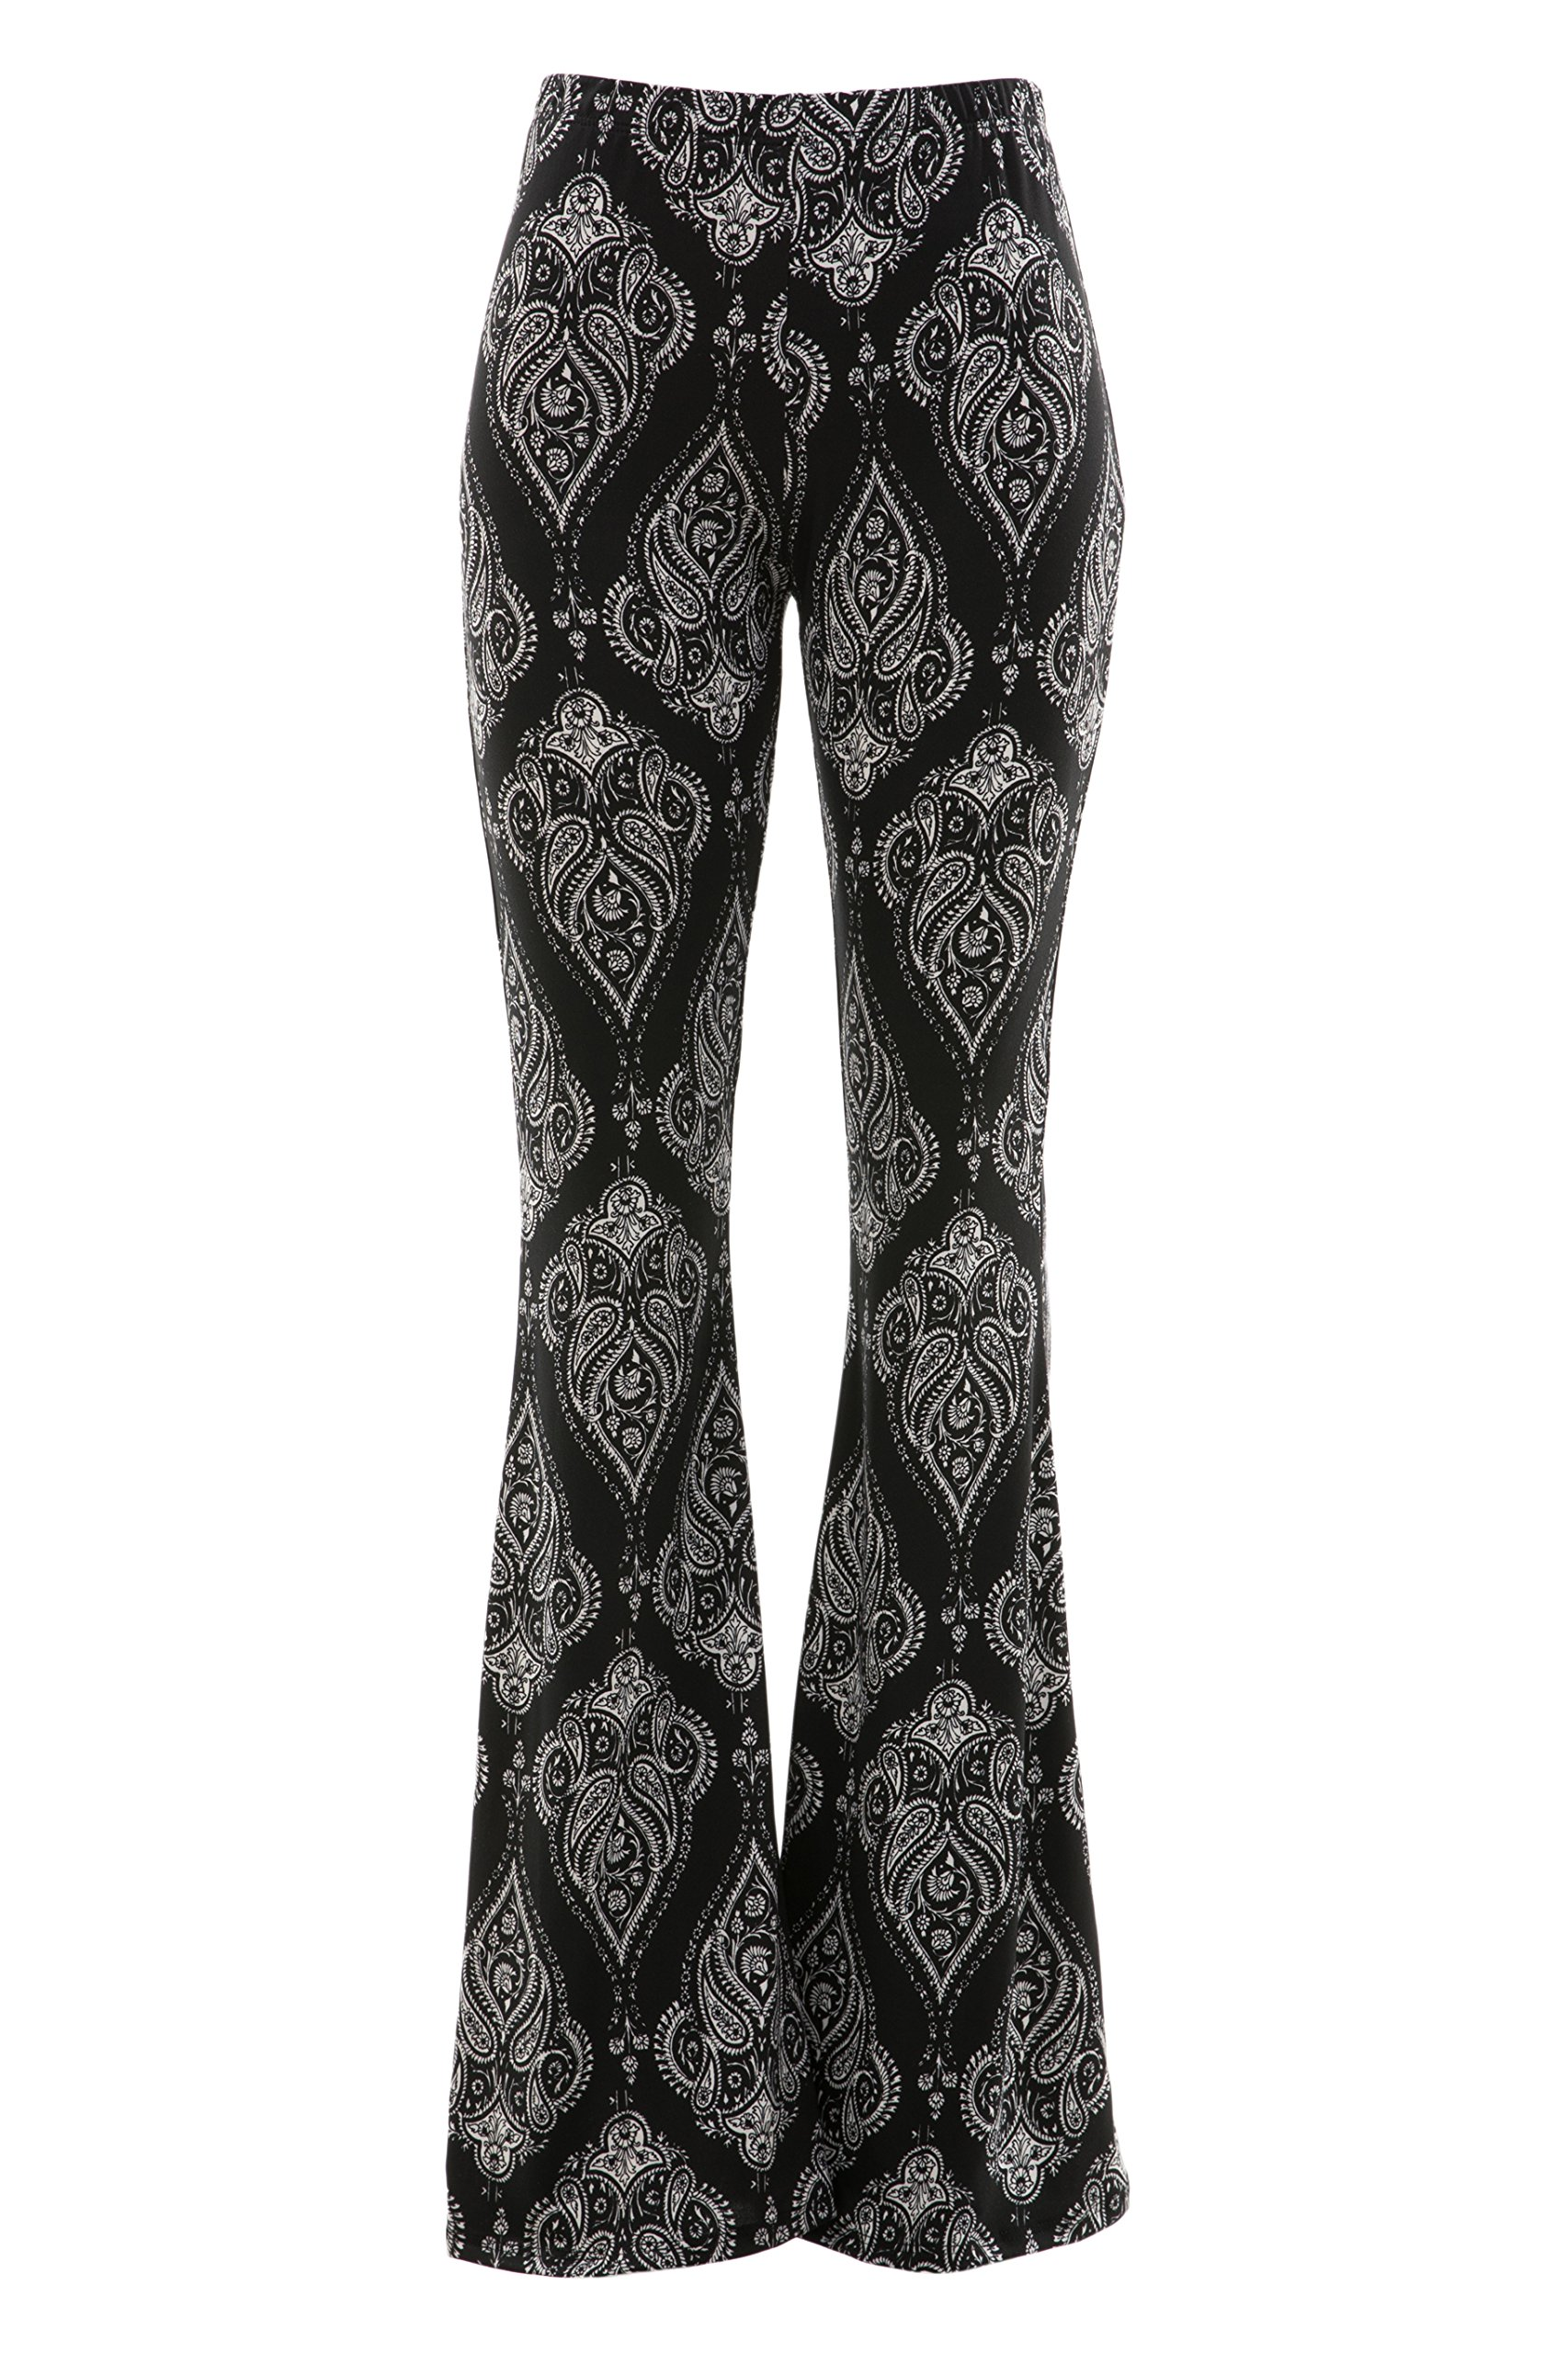 Fashionomics Womens Boho Comfy Stretchy Bell Bottom Flare Pants (S, BH33 BLK)